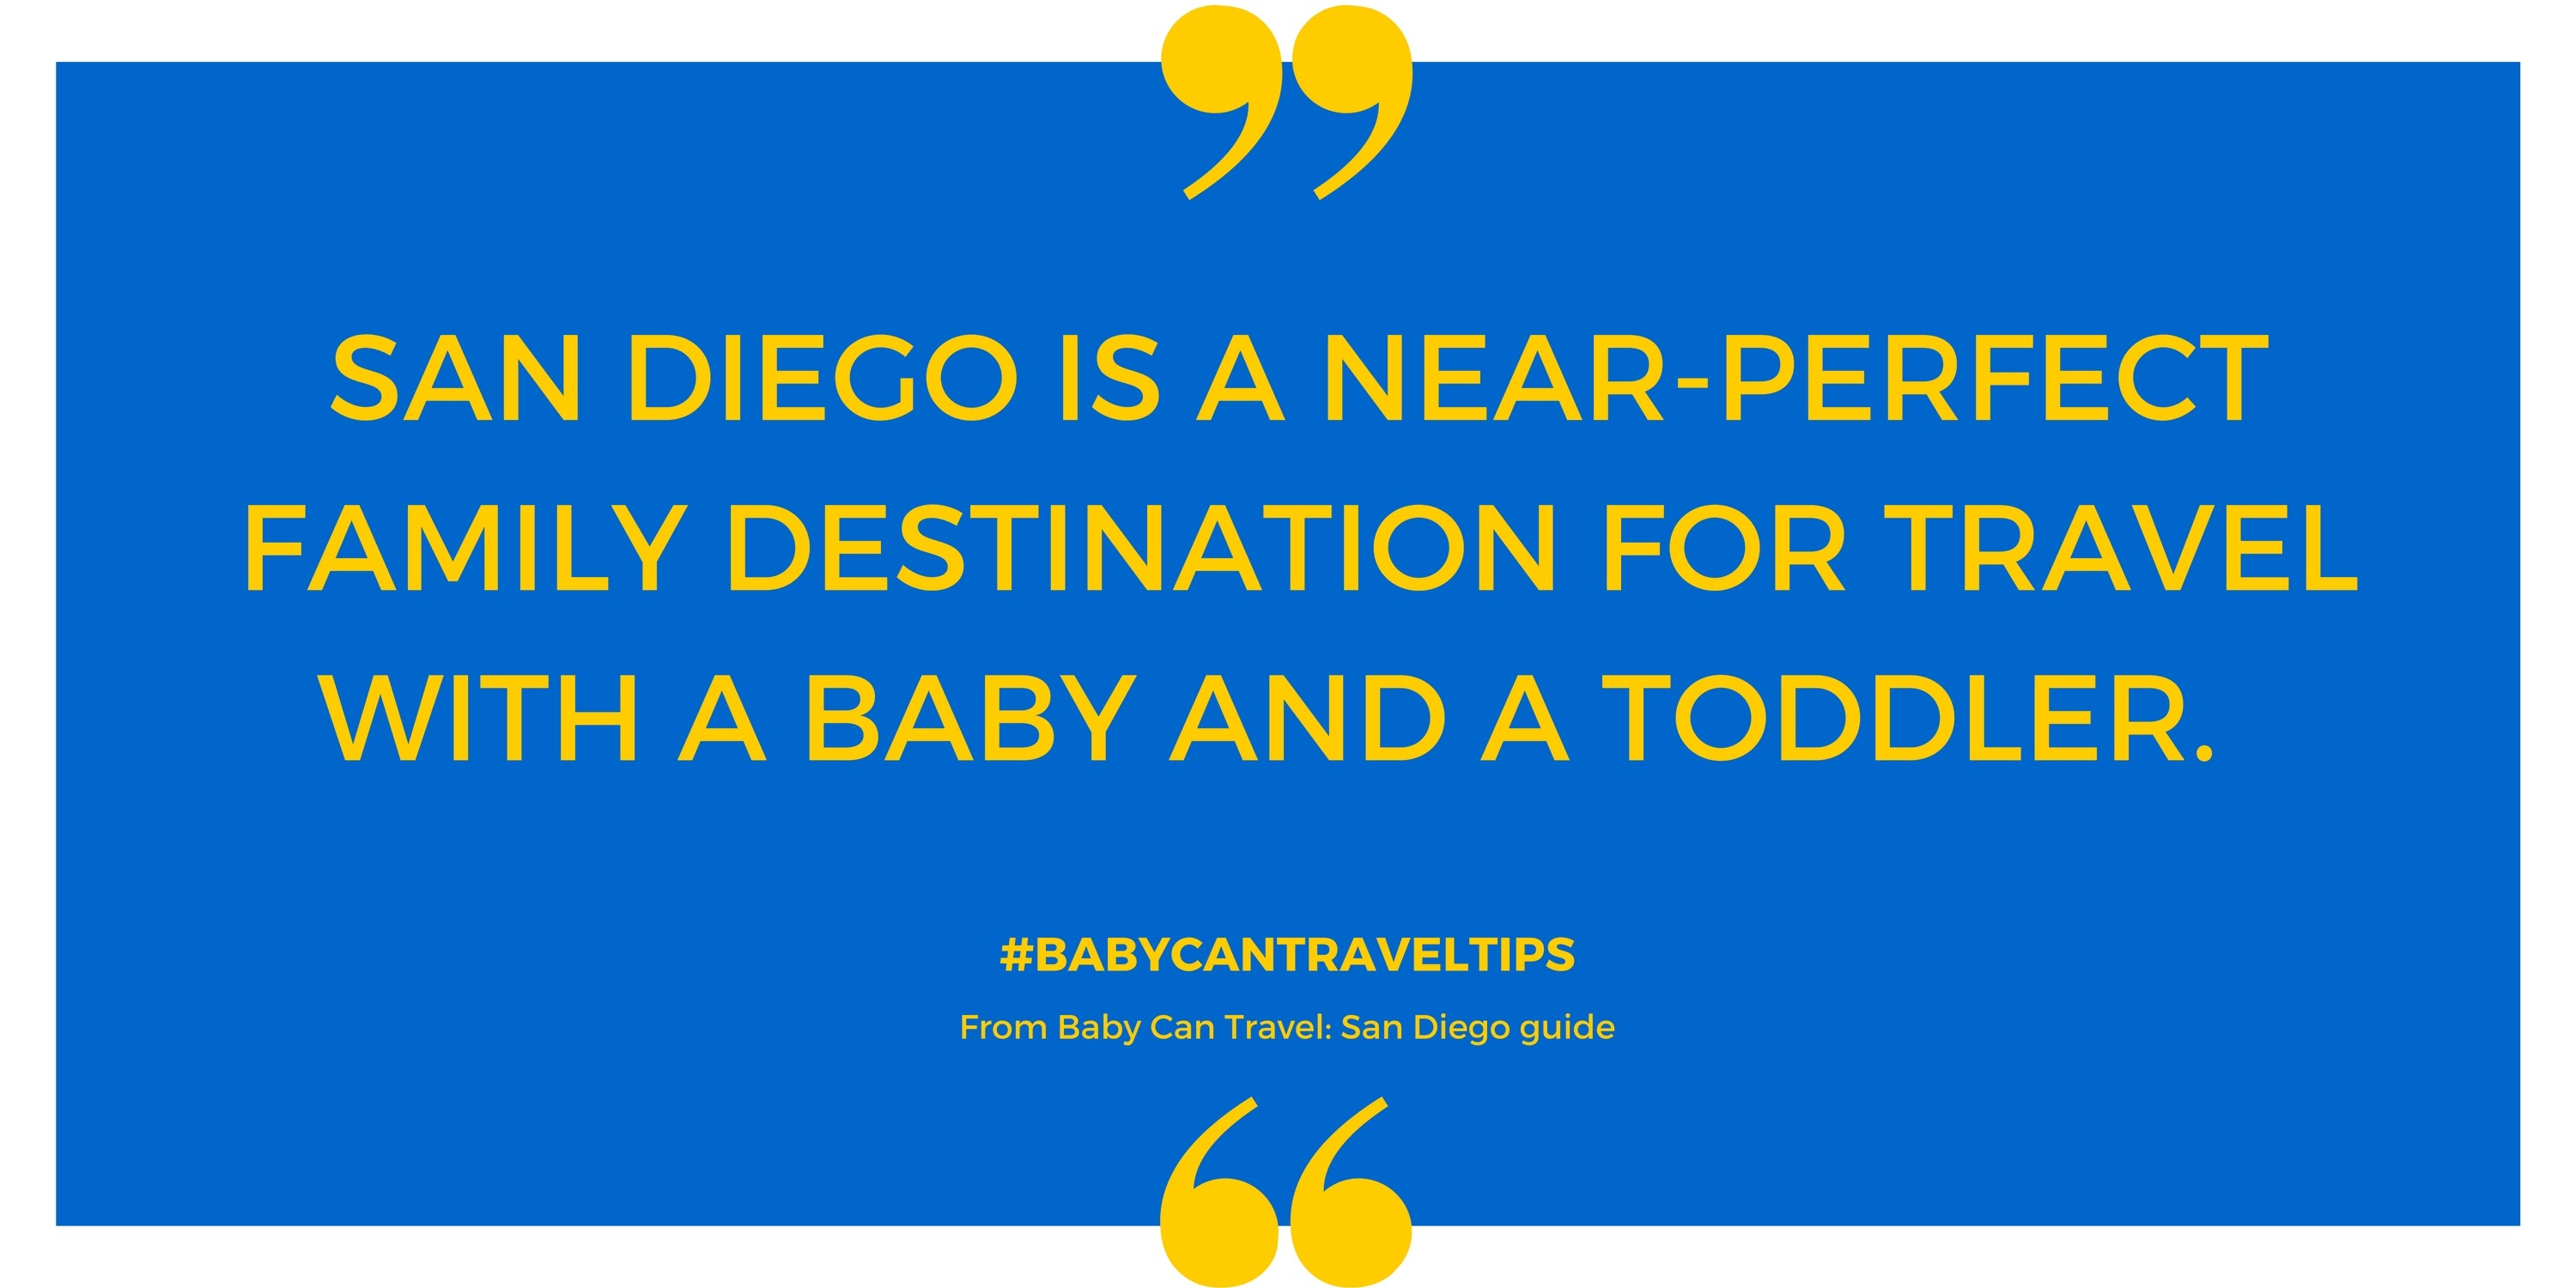 San Diego With a Baby and Toddler - Quote